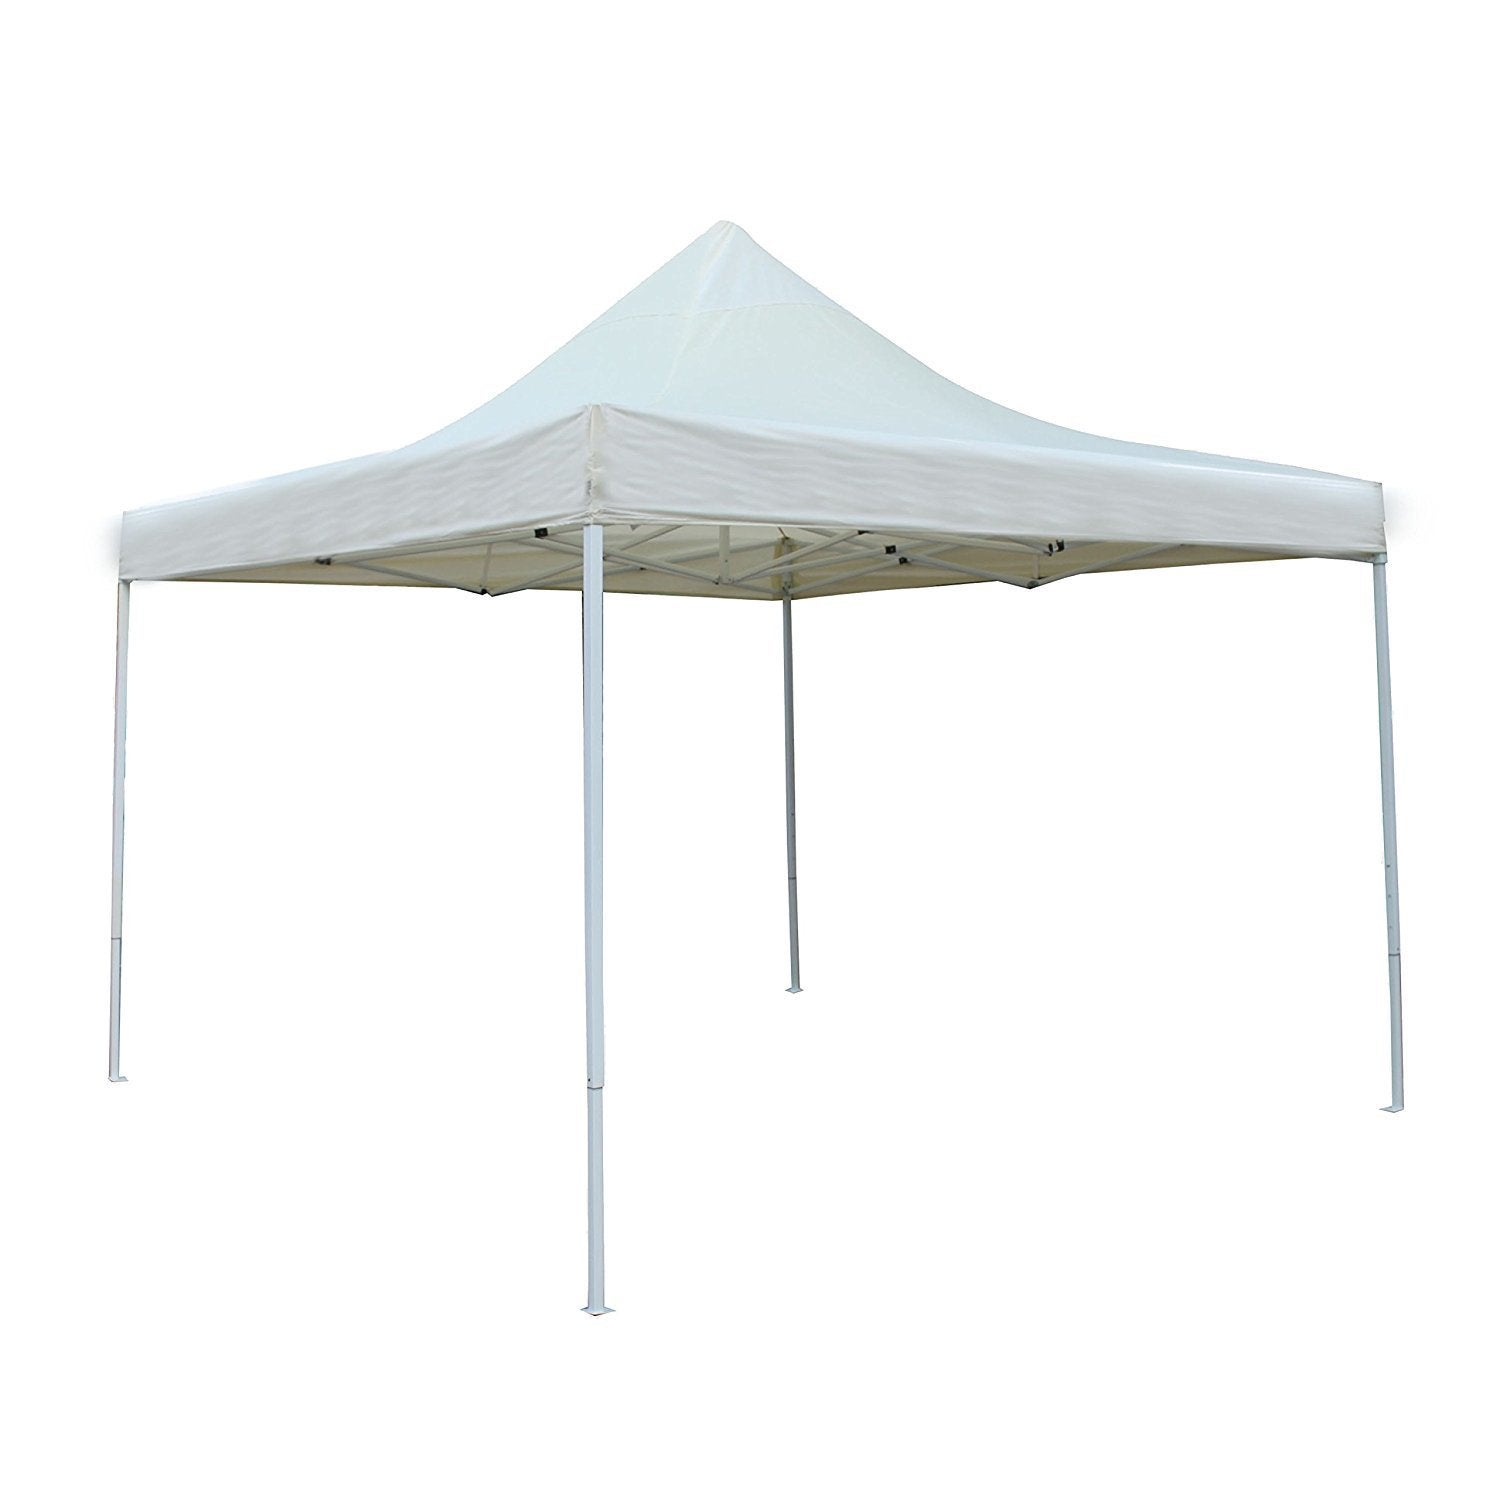 Aleko 10'X10' Portable Canopy Party Waterproof Cream (Ivo...